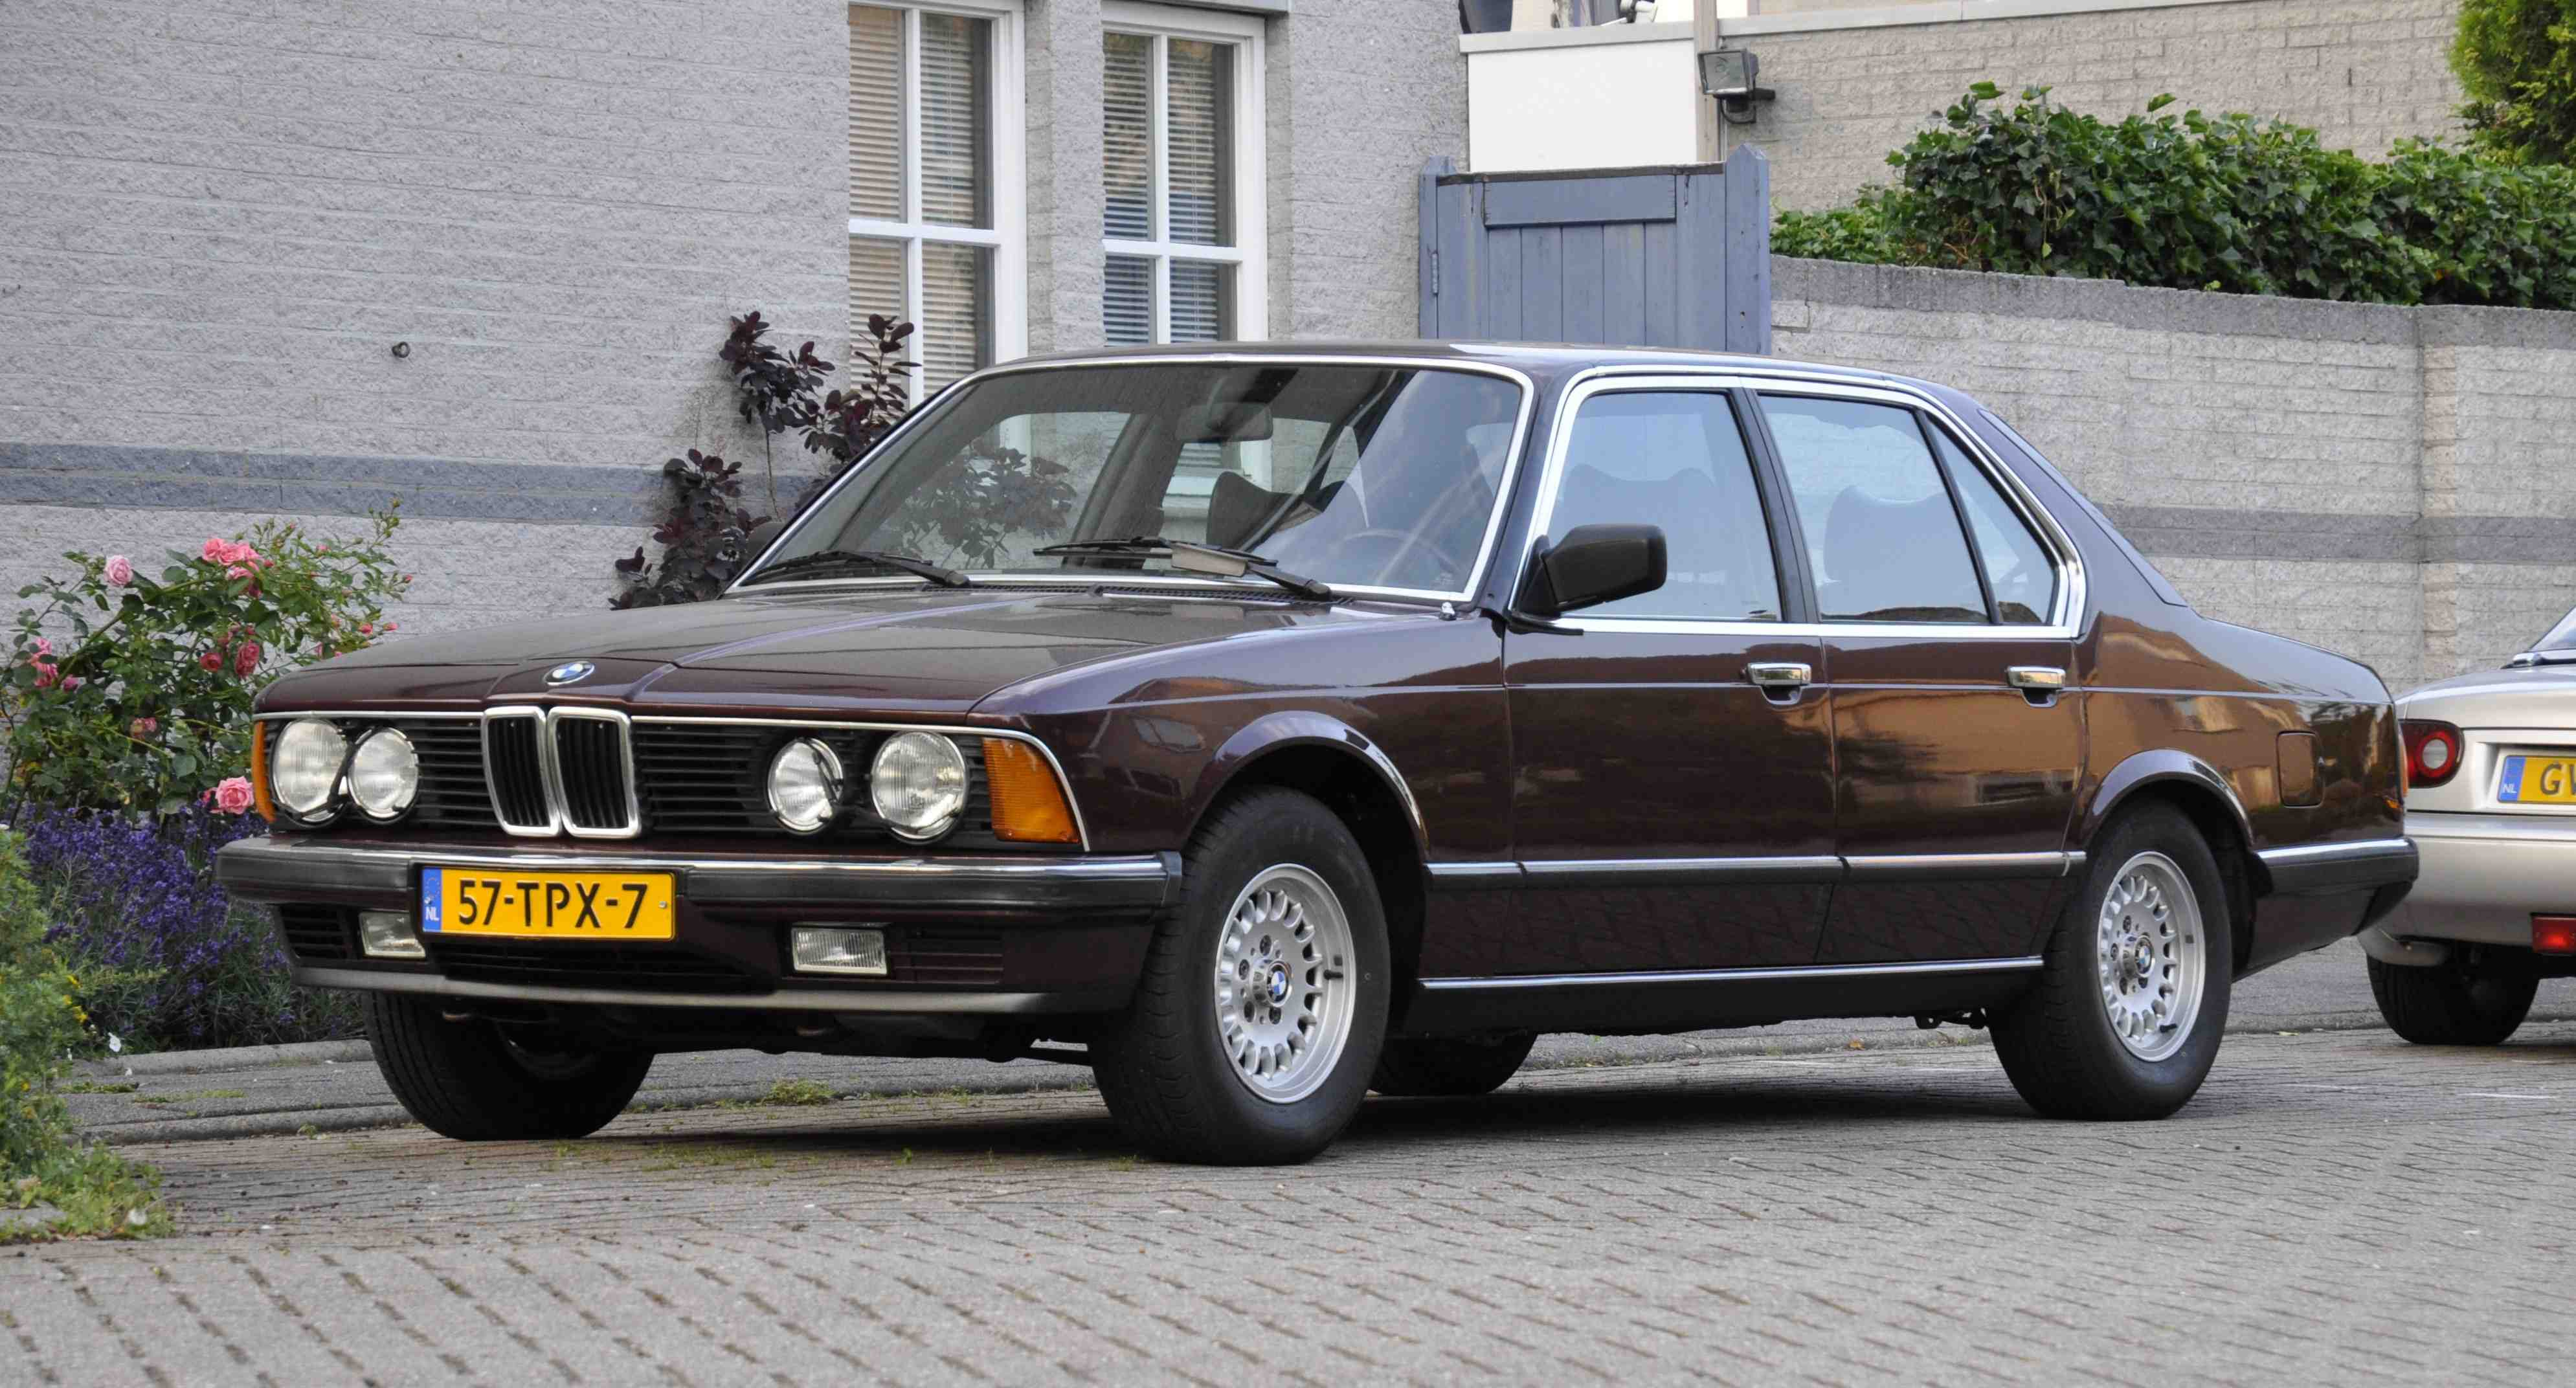 BMW Turbo Discussion - BMW 745i and BMW Turbo Project Forums